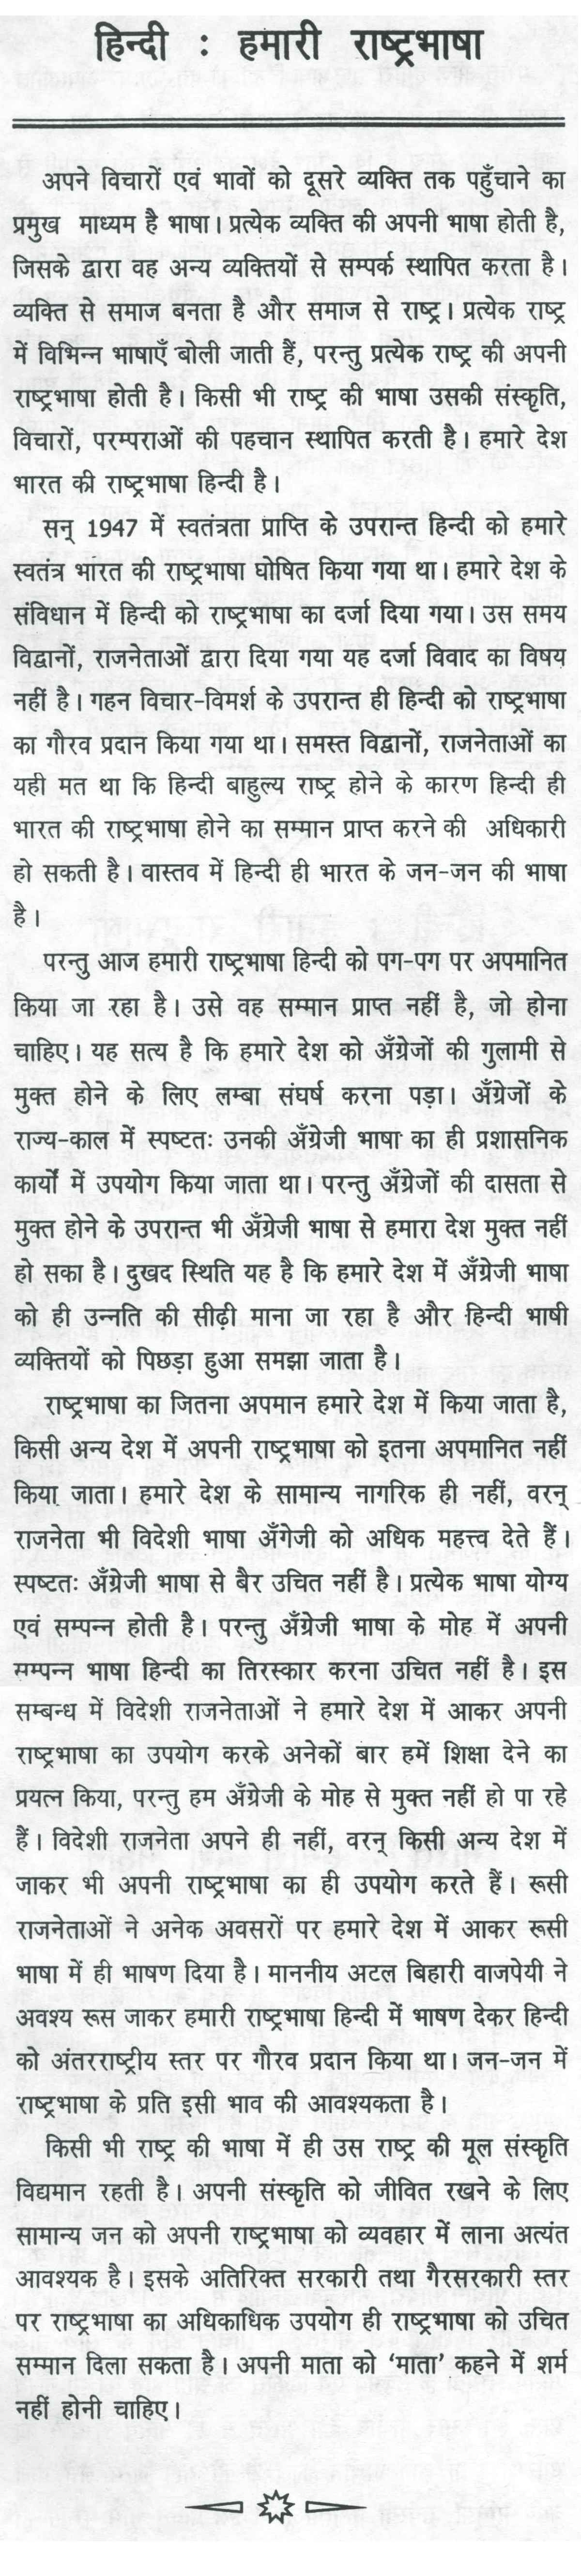 013 Essay On Unity In Hindi Example Ideas Of Our National Language Fancy Book For Class Fascinating Importance Diversity Full